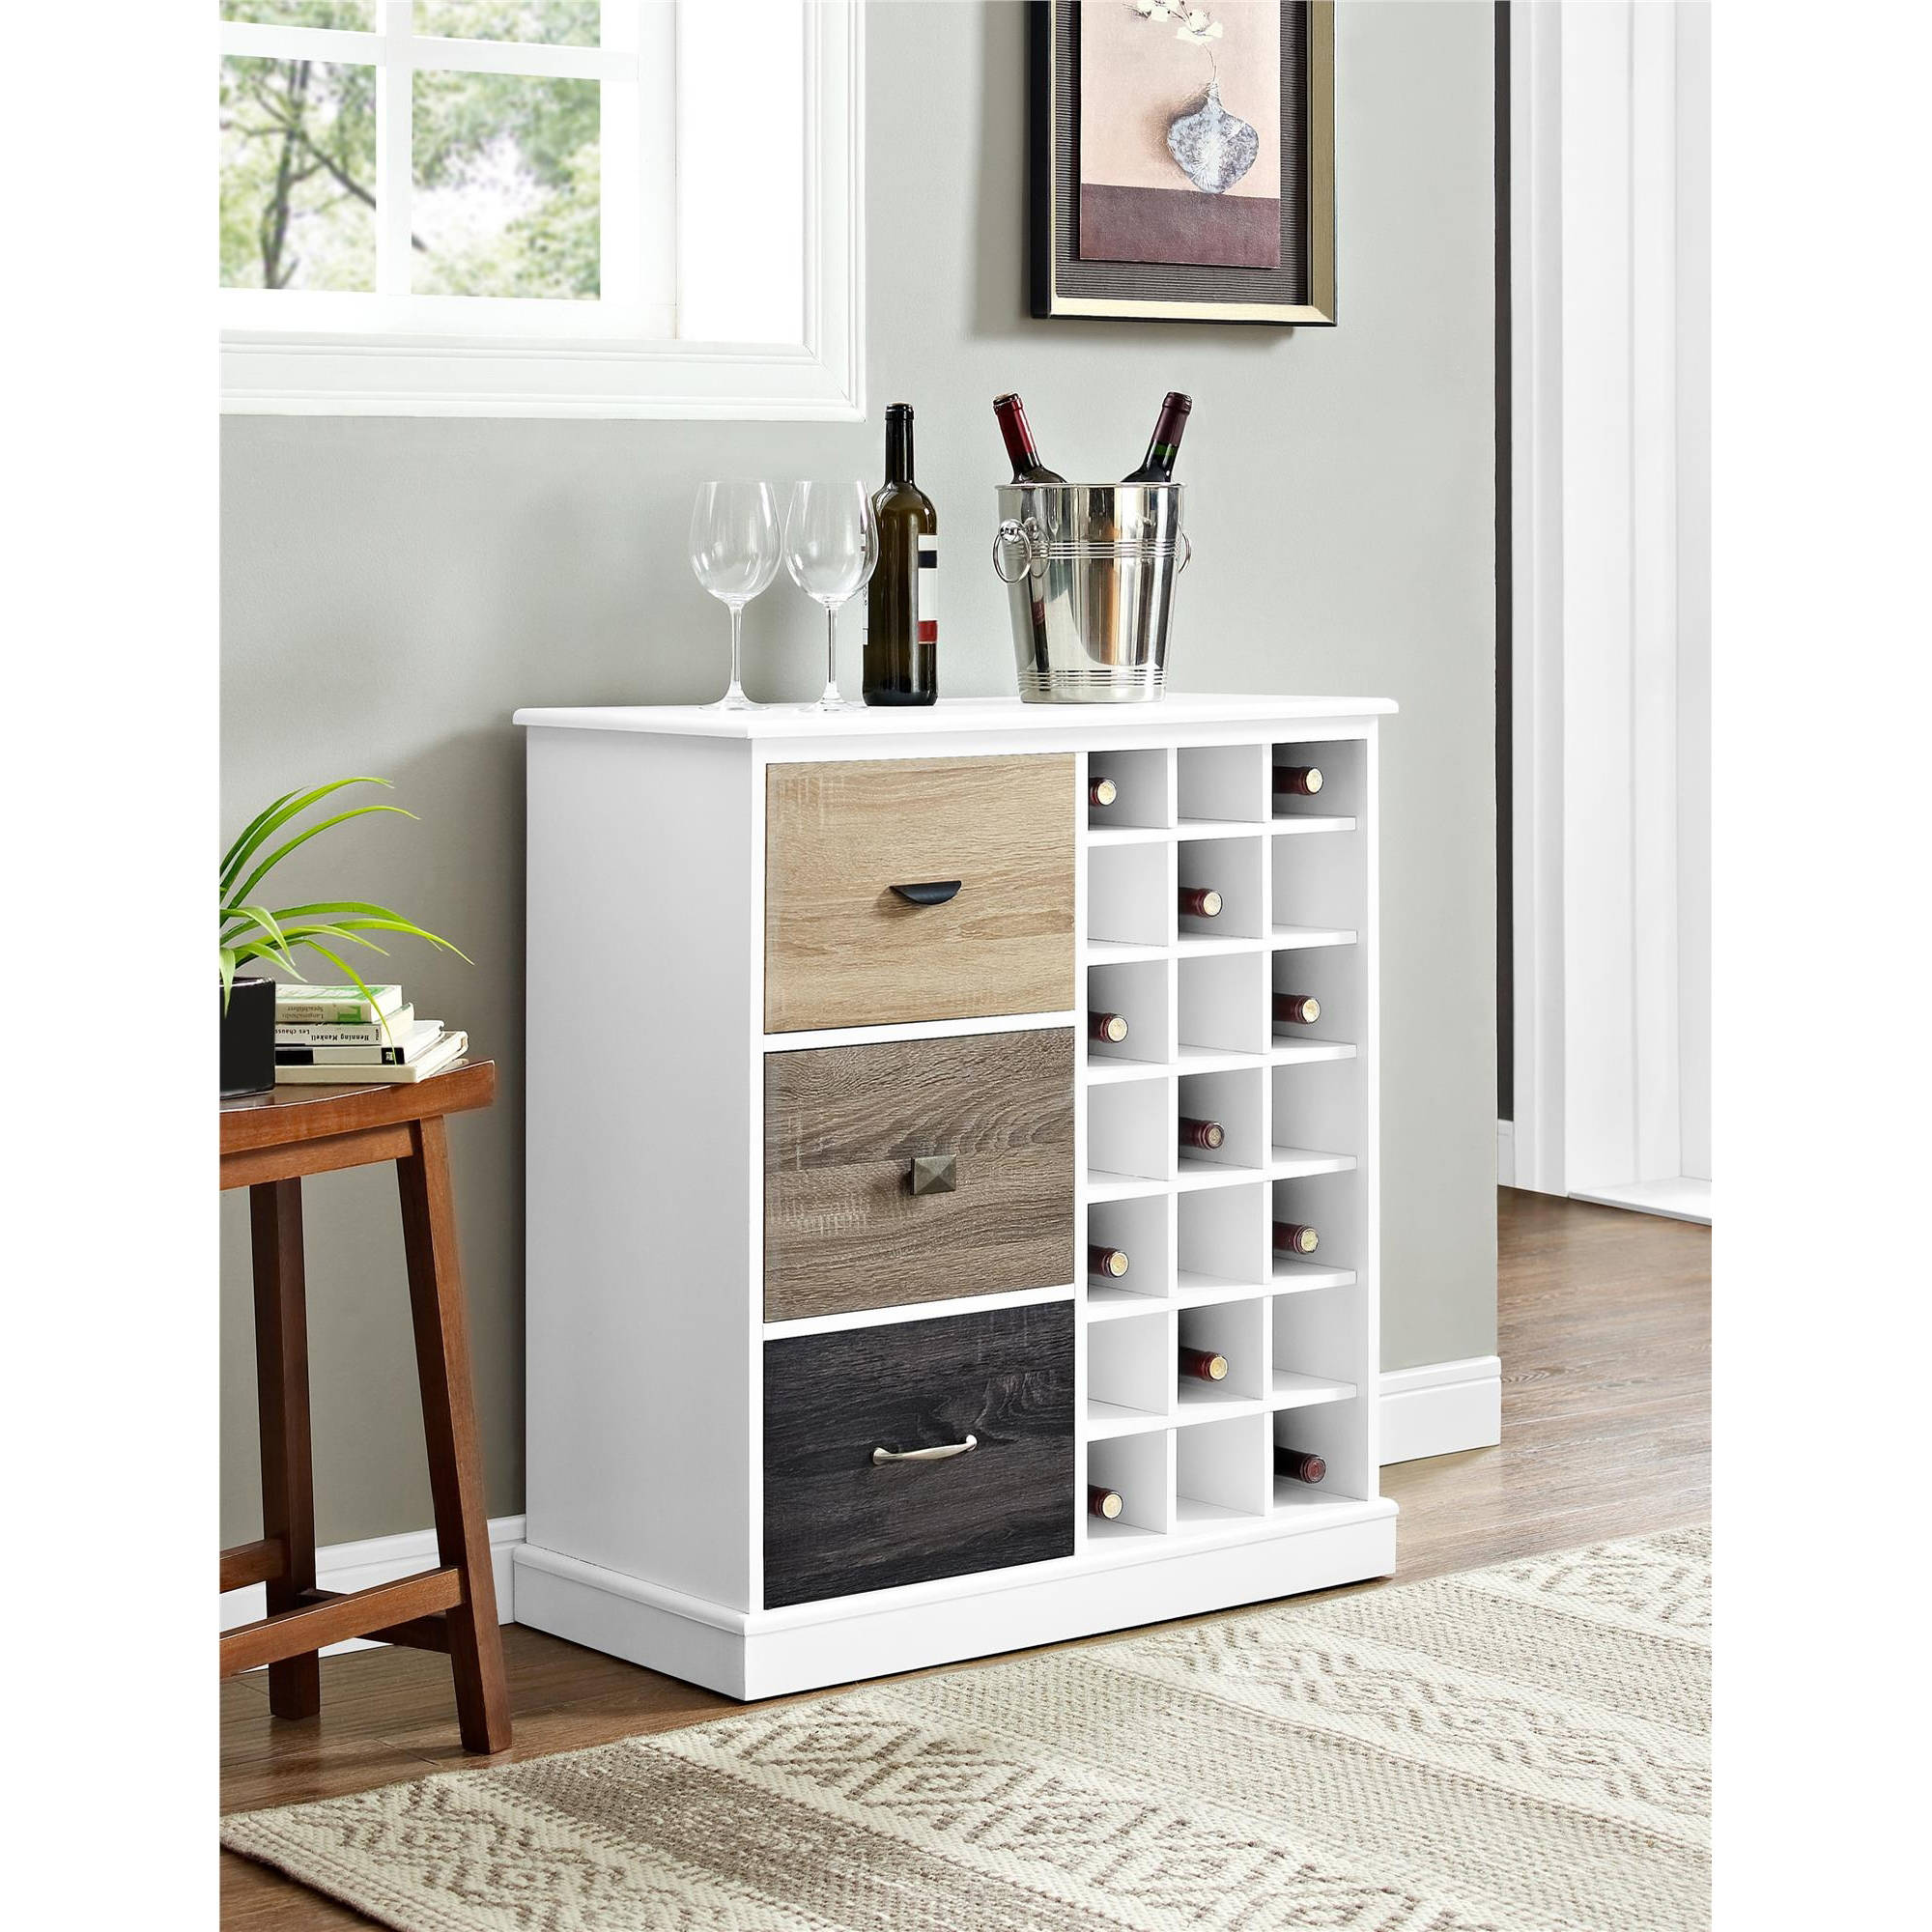 Altra Mercer Wine Cabinet with Multicolored Door Fronts, White